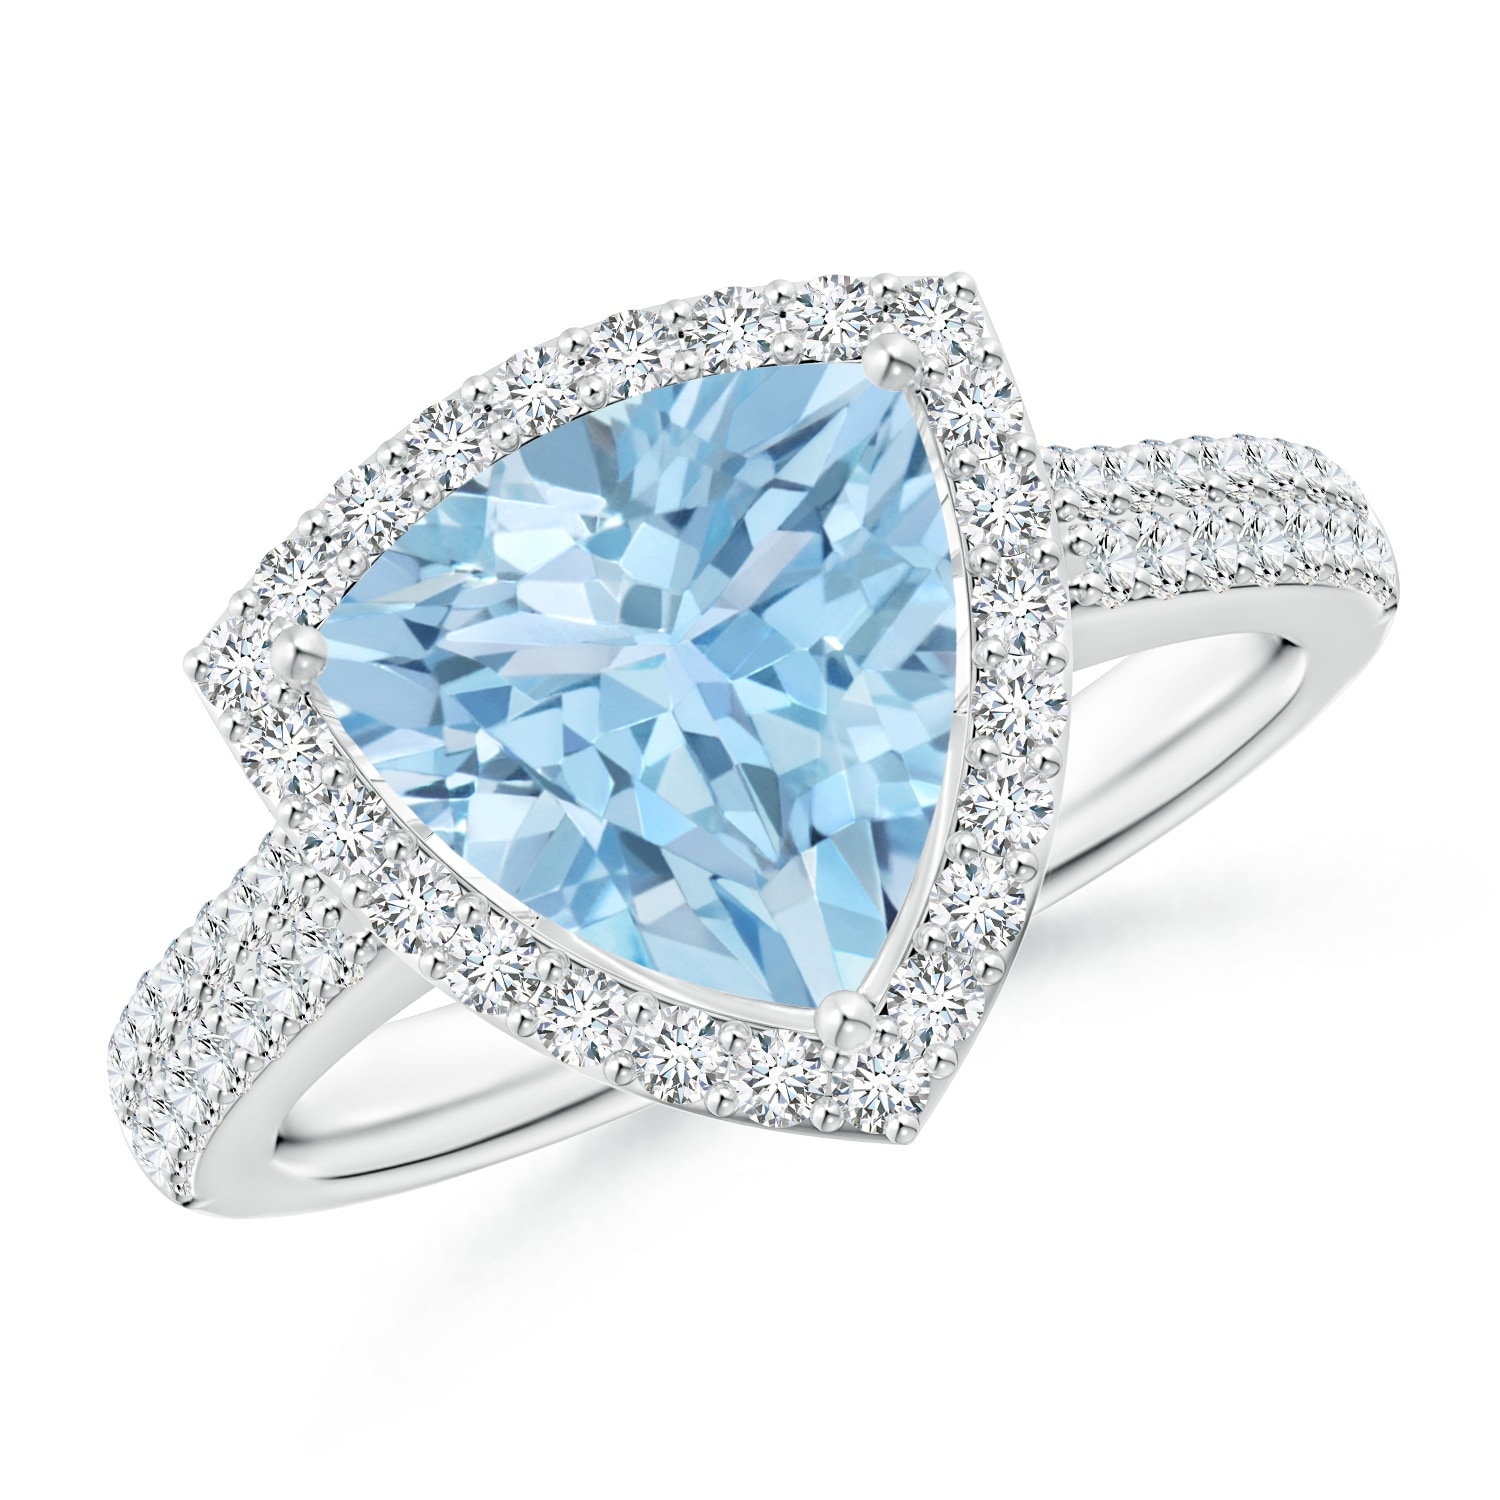 Trillion Aquamarine Cocktail Halo Ring With Diamond Accents Throughout Most Recently Released Sparkling Halo Rings (Gallery 21 of 25)